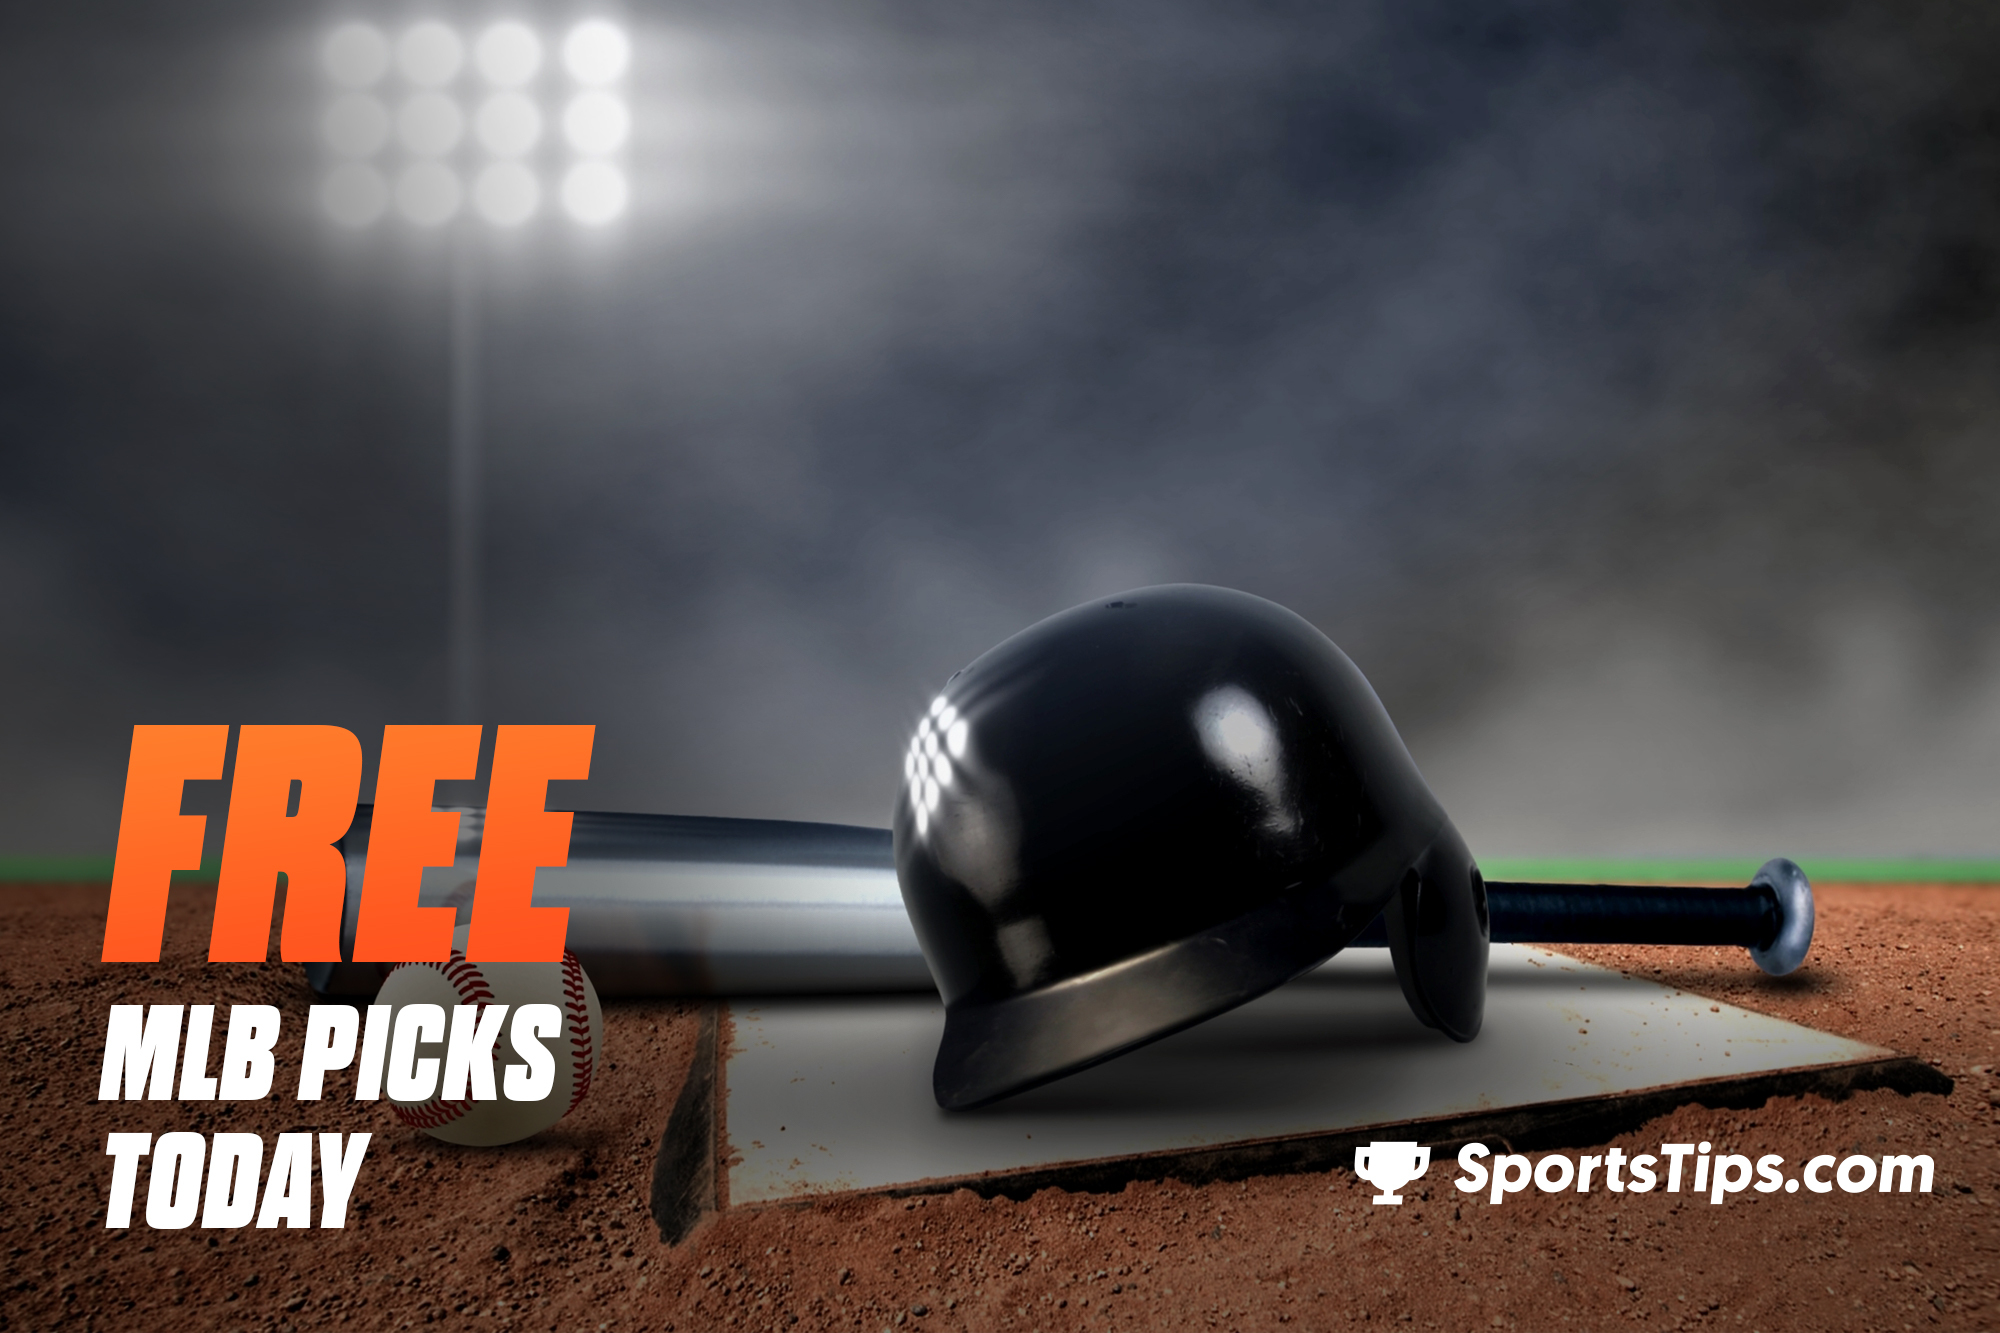 Free MLB Picks Today for Saturday, May 1st, 2021